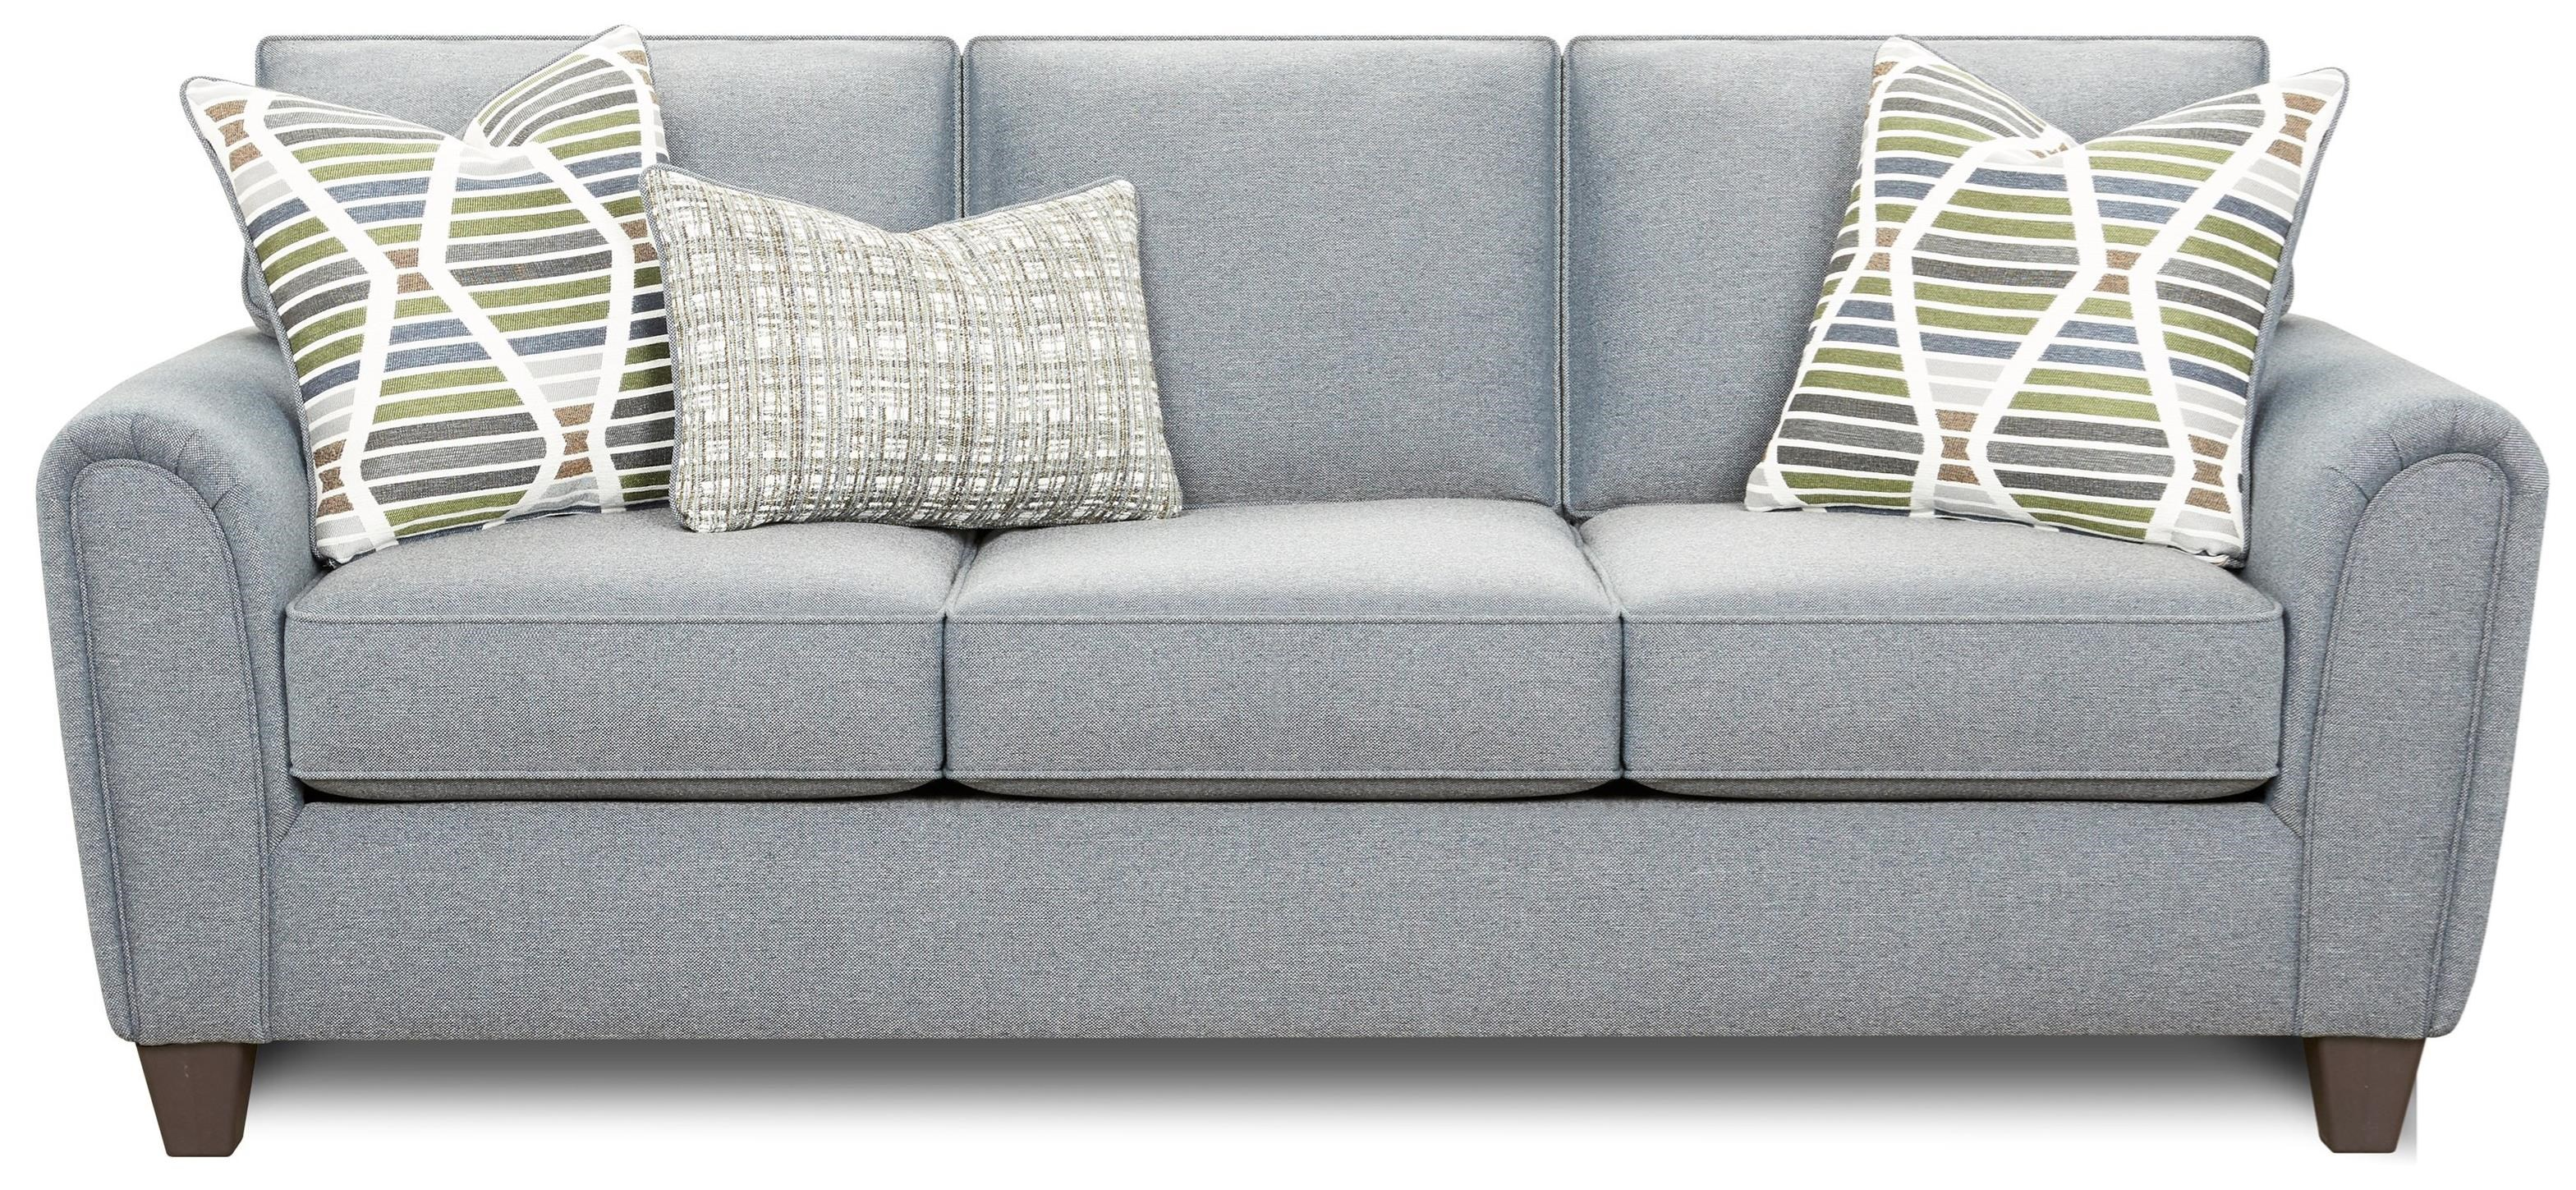 49-00 Sofa by Fusion Furniture at Hudson's Furniture